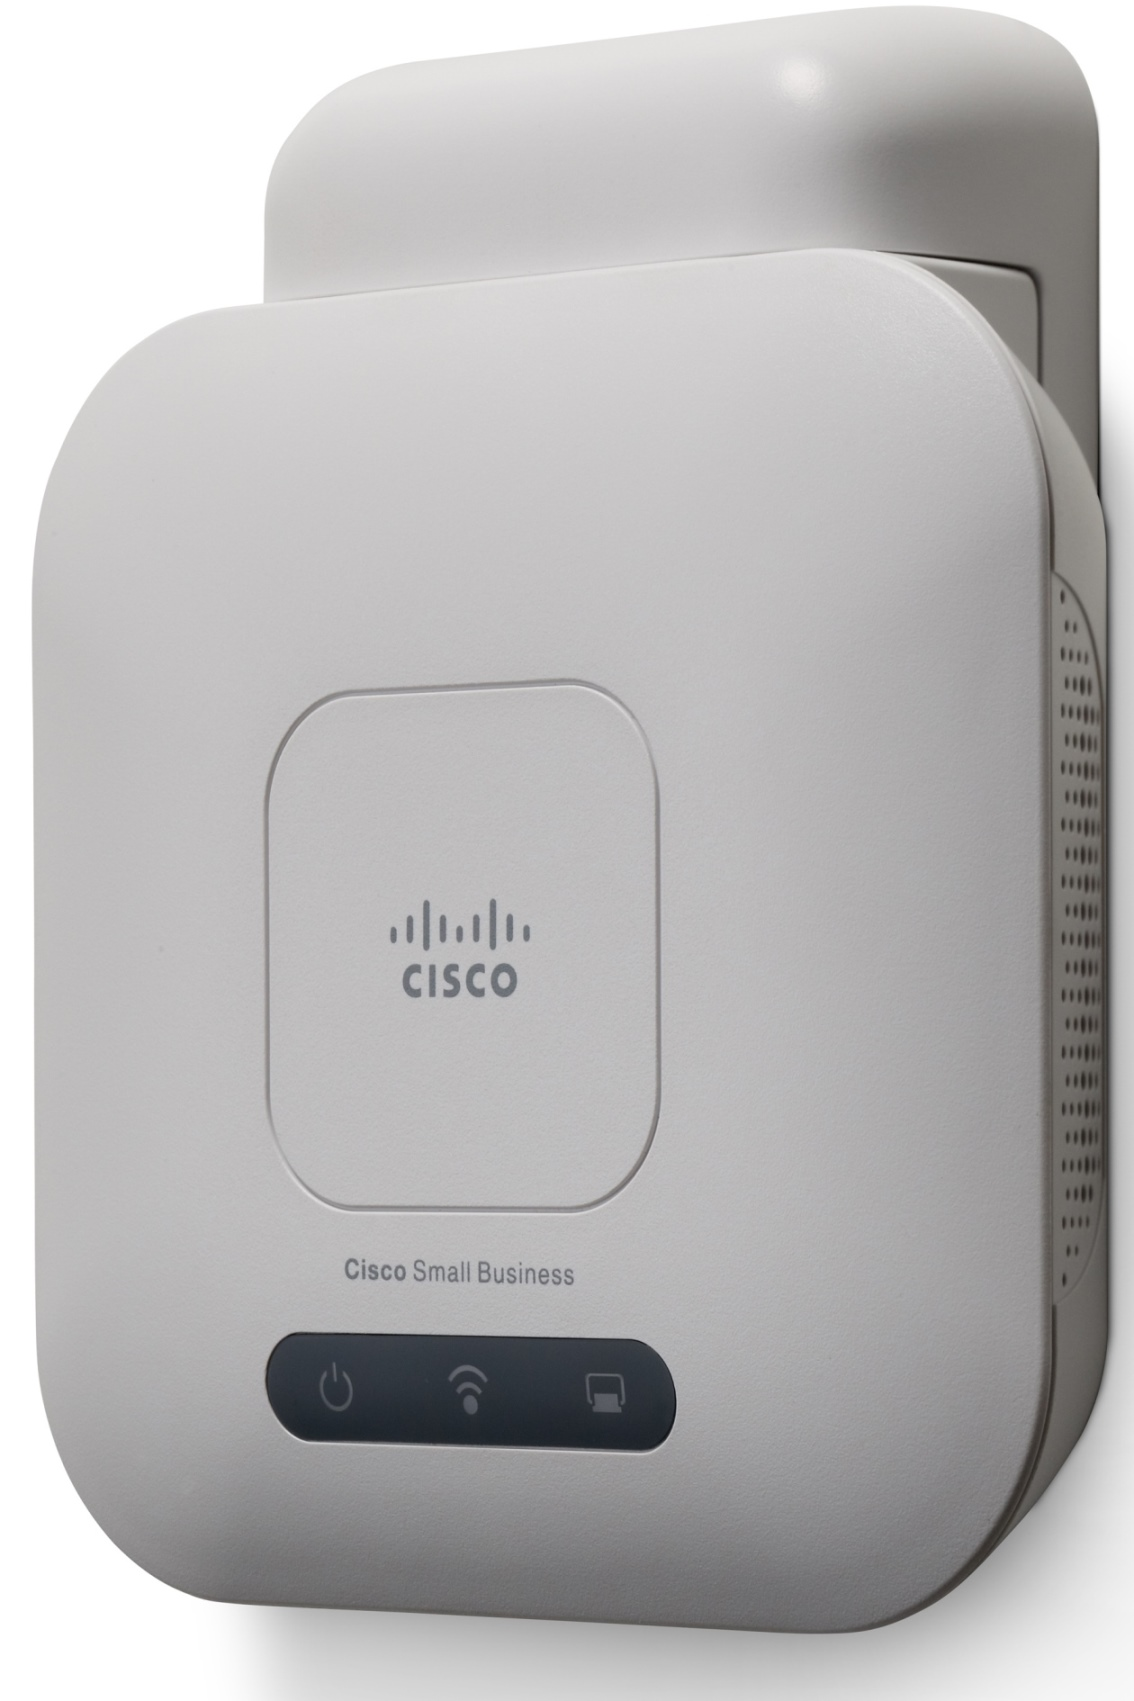 Cisco Wifi AP Single Radio 802.11n, WAP121-E-K9-G5